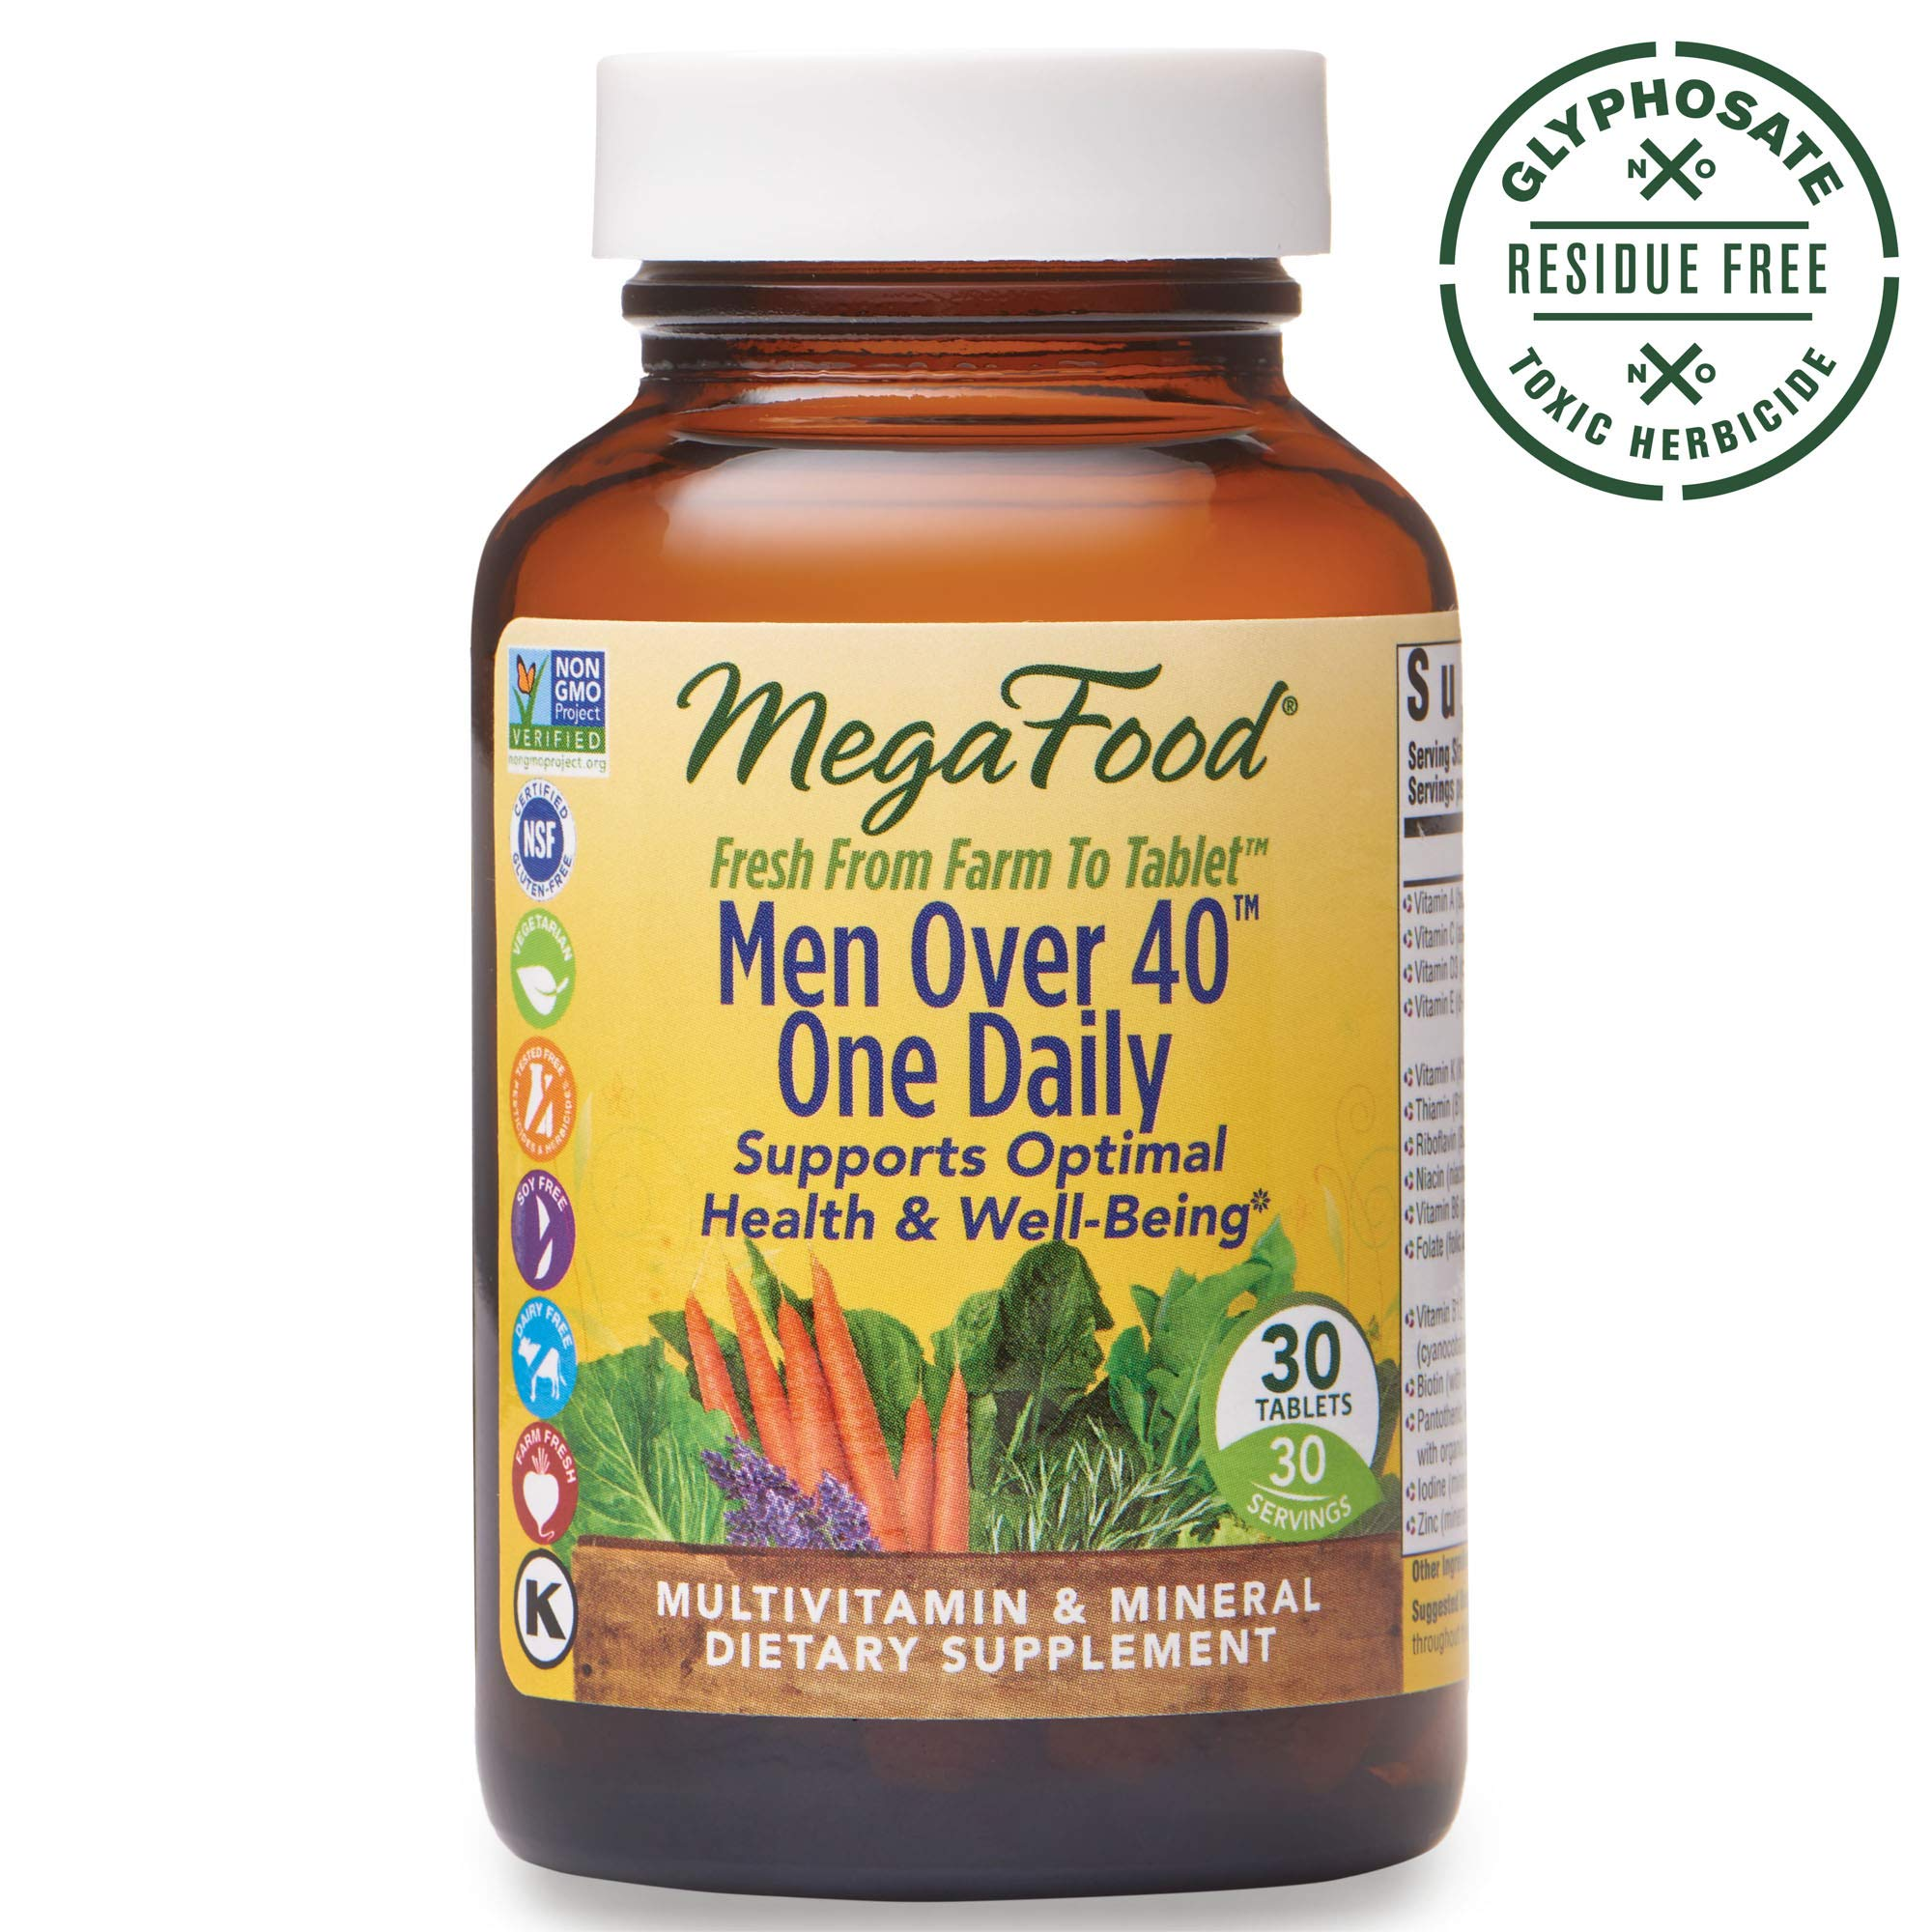 MegaFood, Men Over 40 One Daily, Daily Multivitamin and Mineral Dietary Supplement with Vitamins B, D and Zinc, Non-GMO, Vegetarian, 90 Tablets (90 Servings) (FFP) by MegaFood